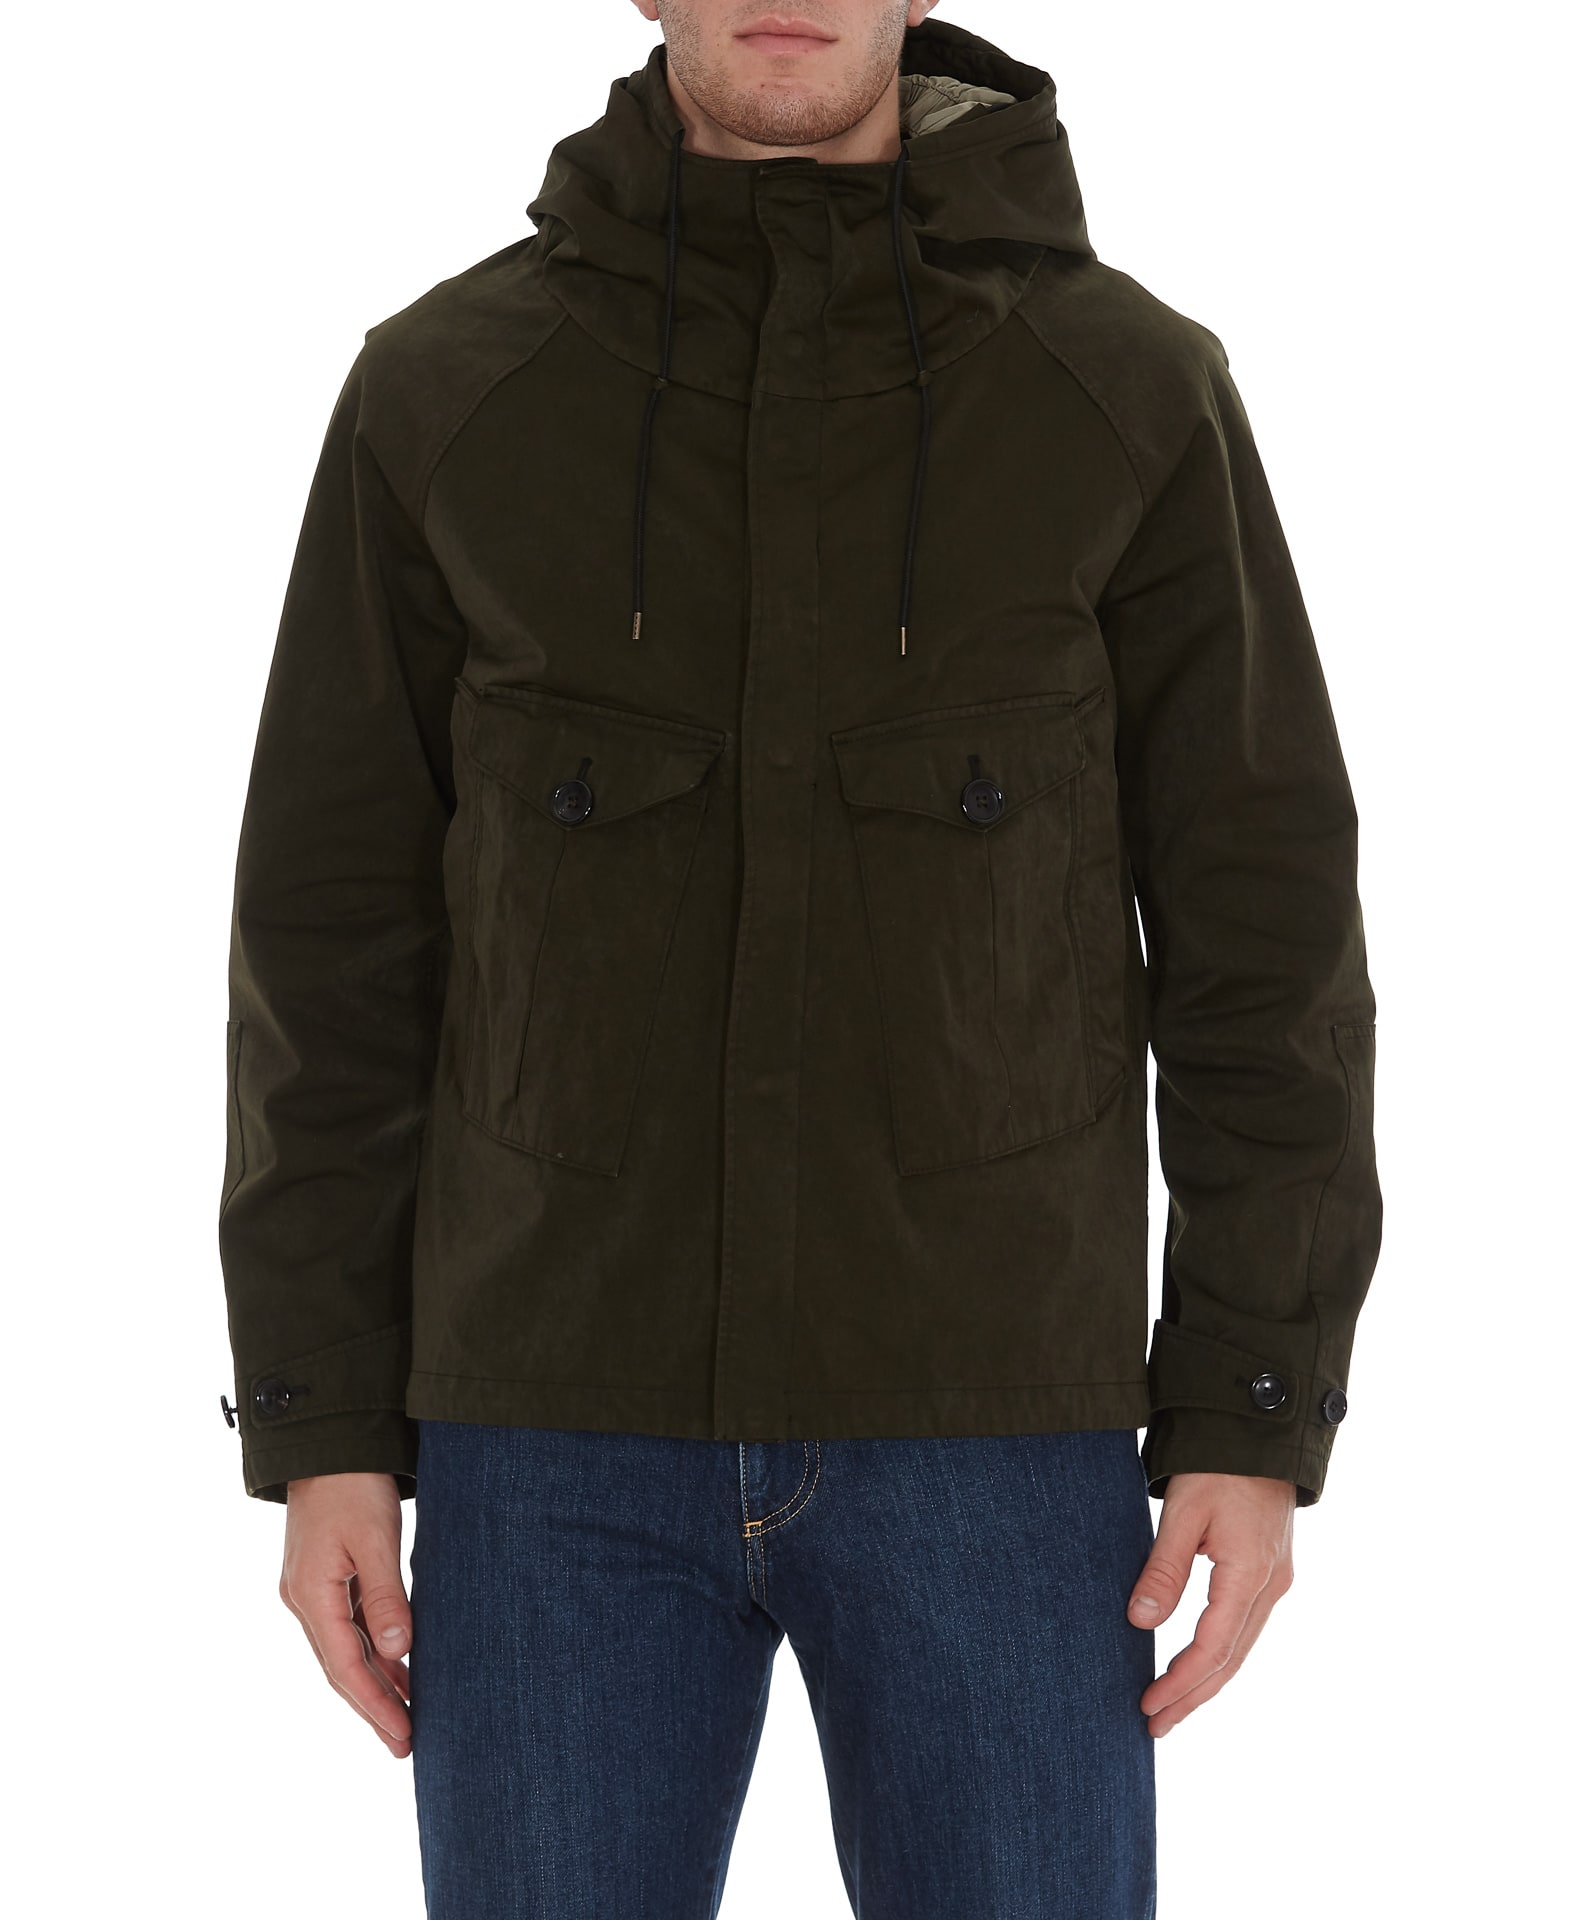 man jacket, anorak model, greenComposition: 60% Polyester +, 40% Polyamide - Lining:, 100% Cotton